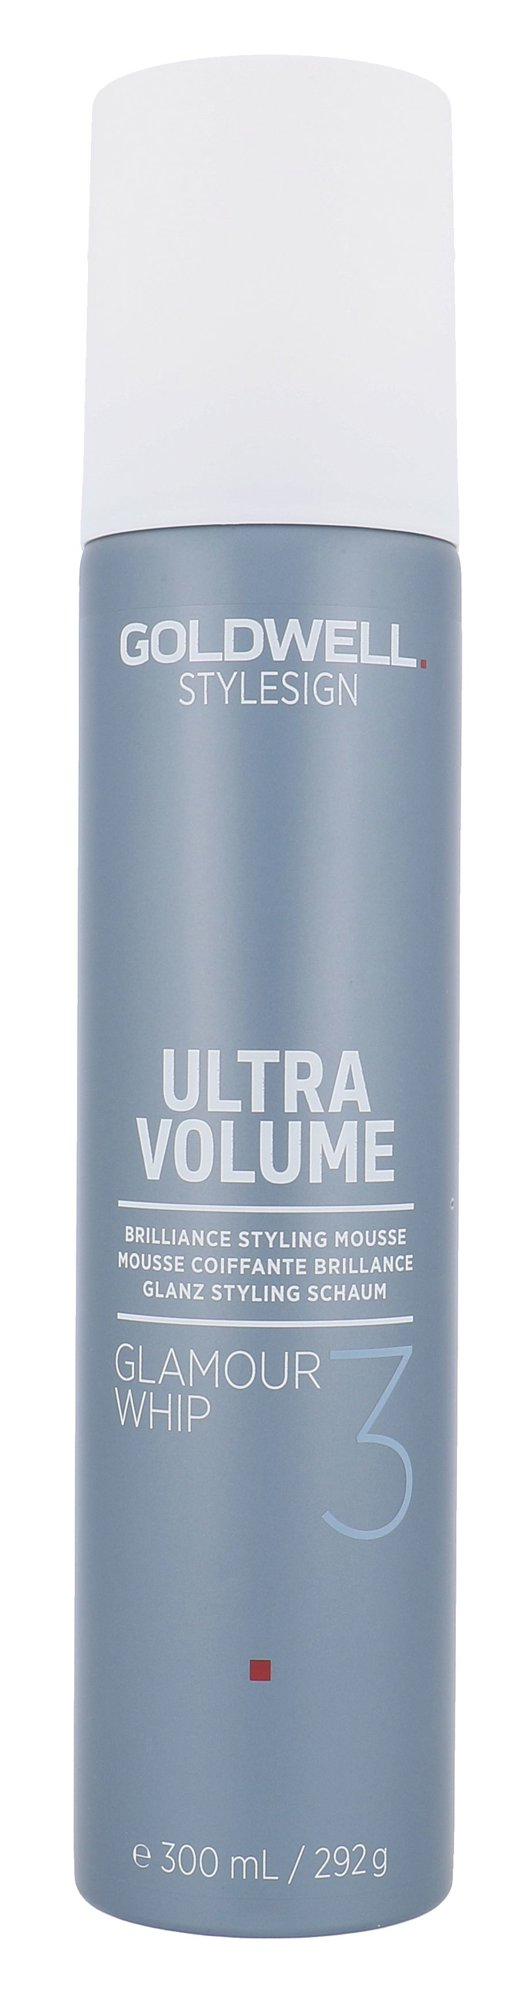 Goldwell Style Sign Ultra Volume Glamour Whip Cosmetic 300ml